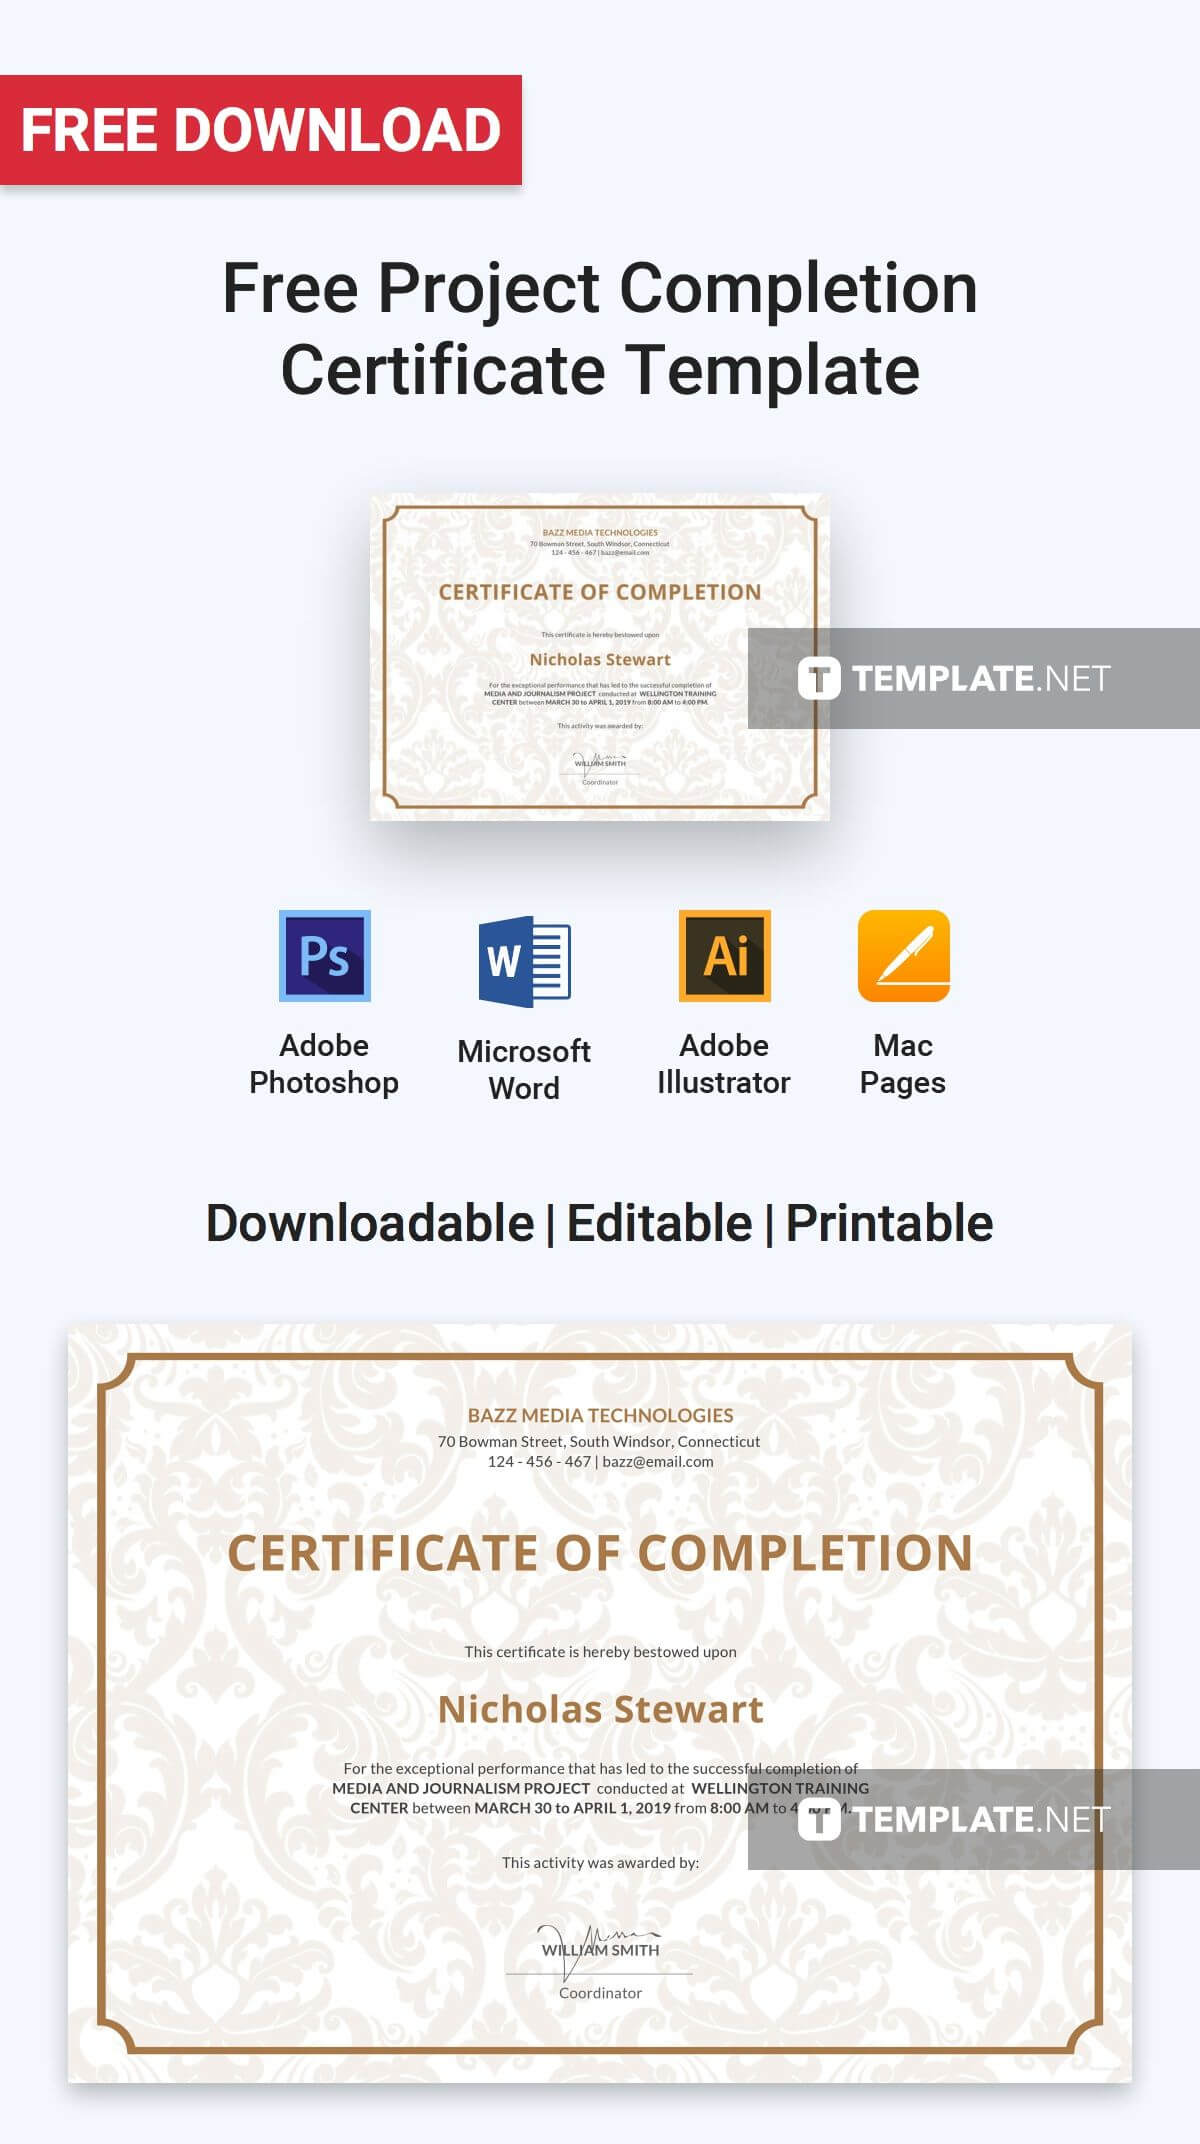 Free Project Completion Certificate | Certificate Templates throughout Certificate Template For Project Completion